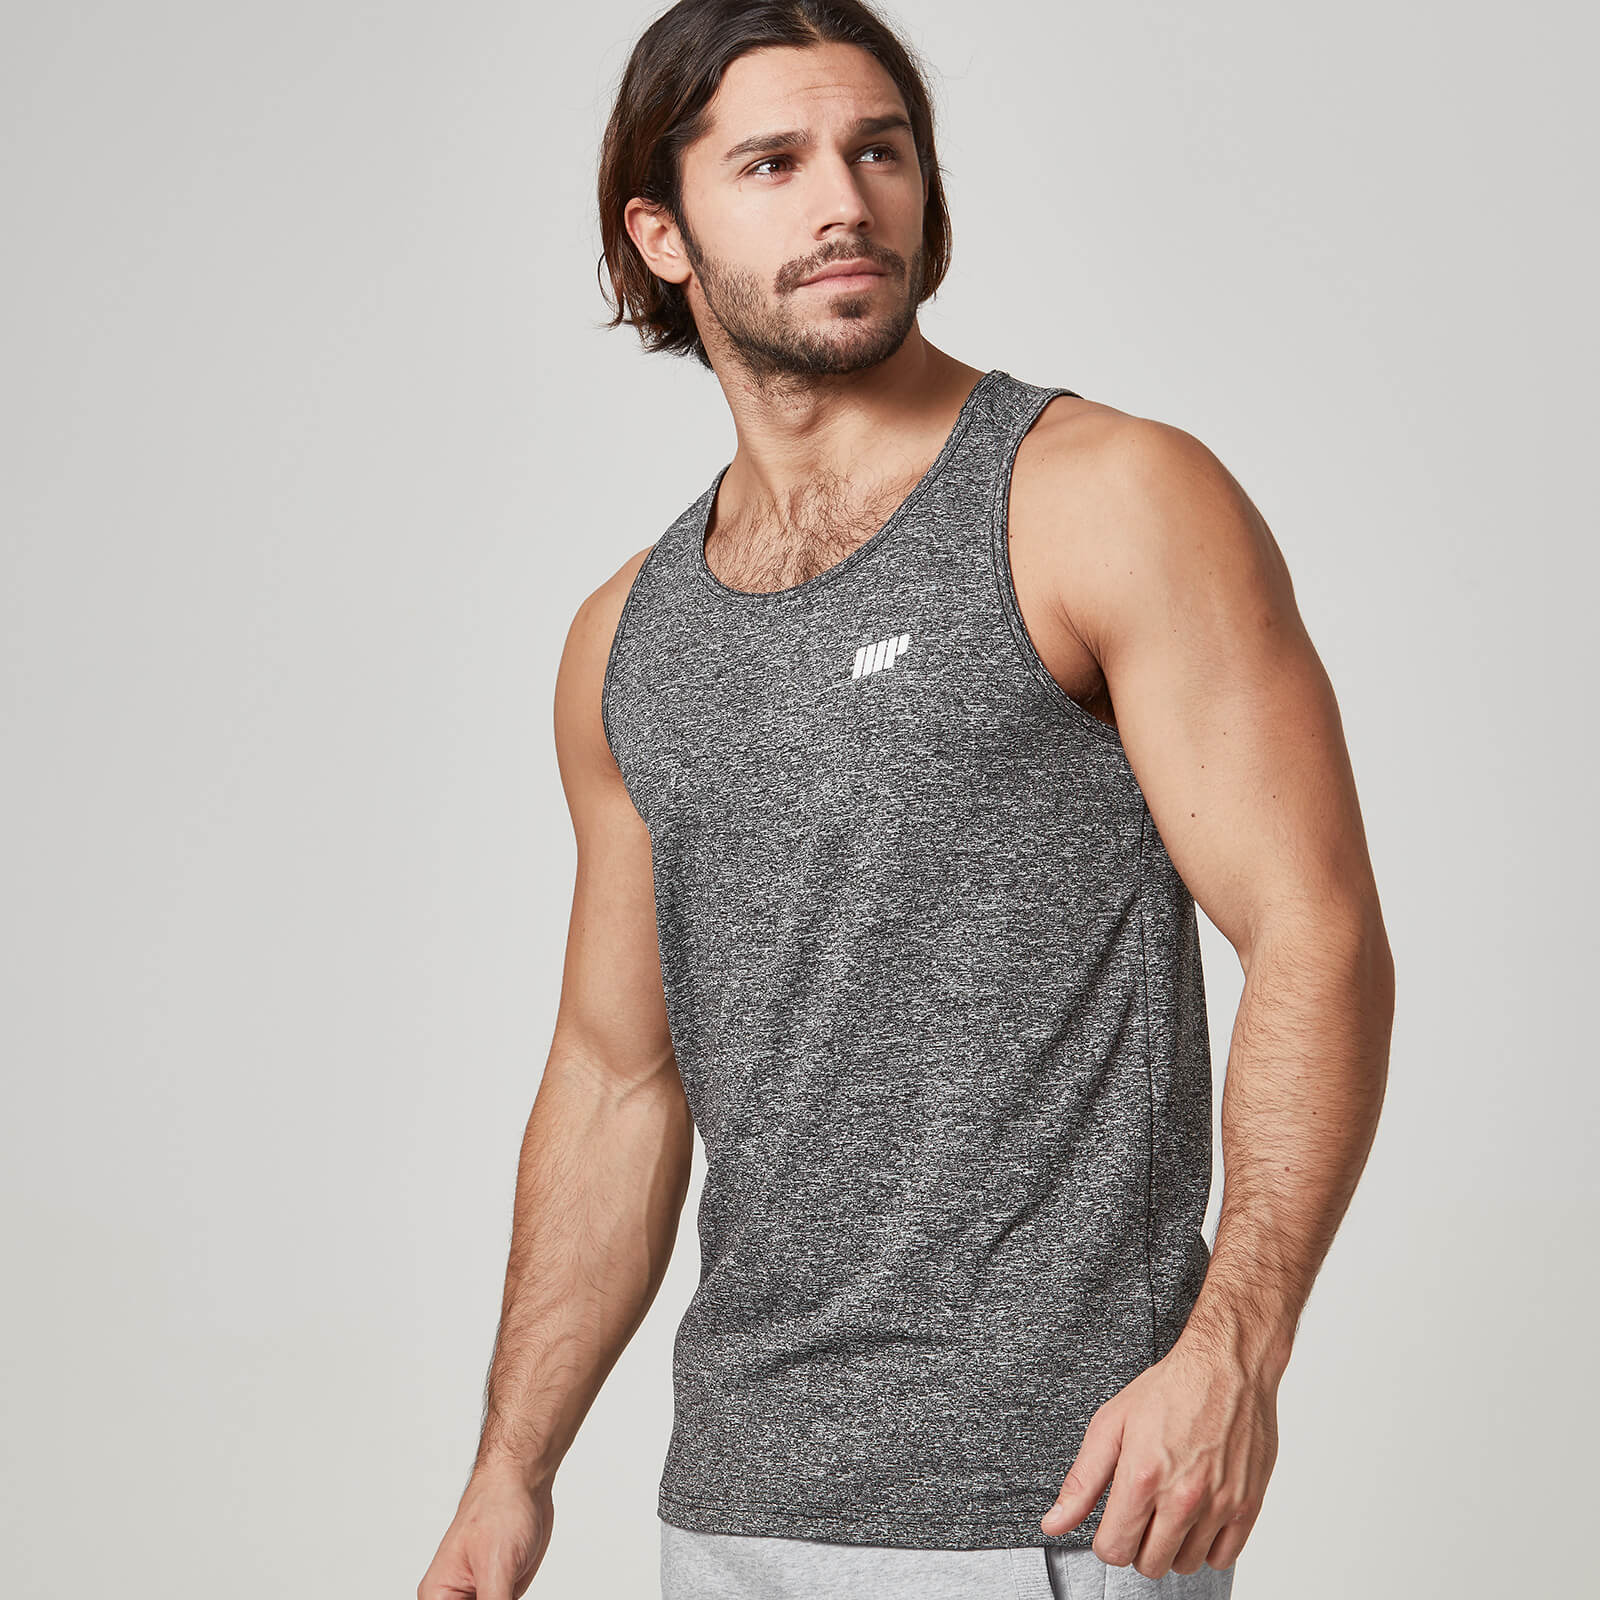 Myprotein Dry Tech Tank Top - Grey, S